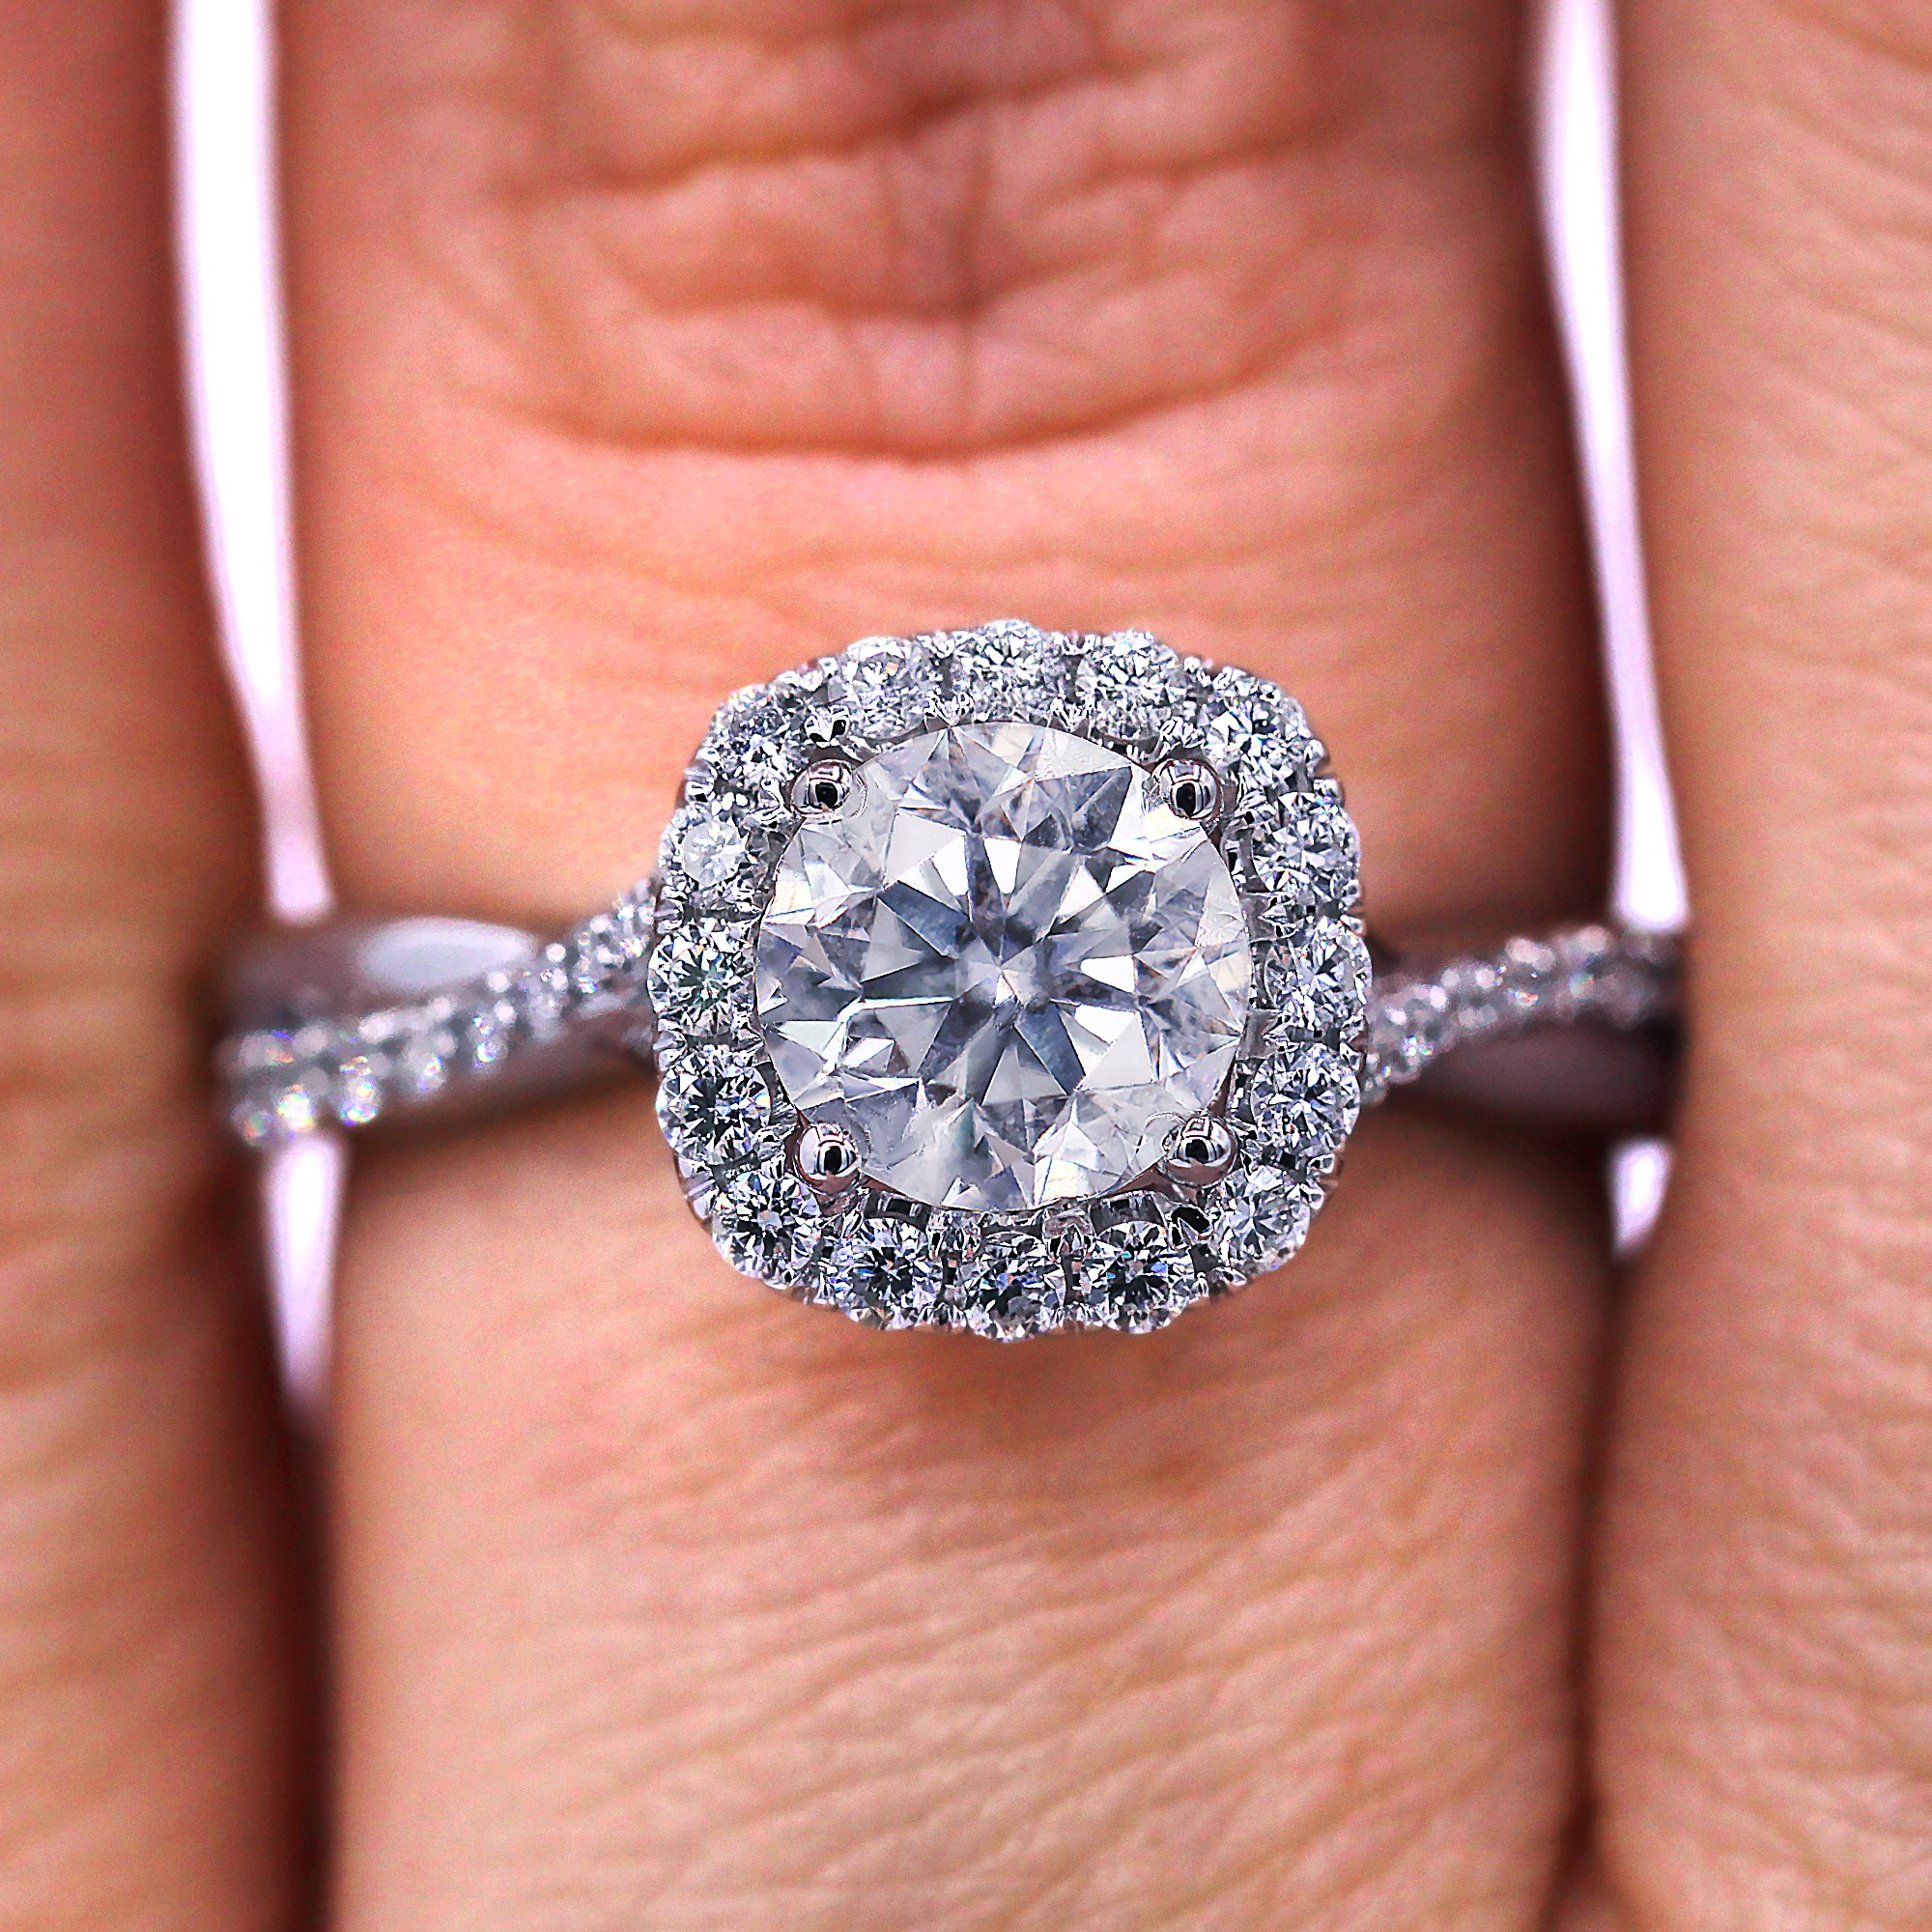 Stunning twisted Halo diamond engagement ring